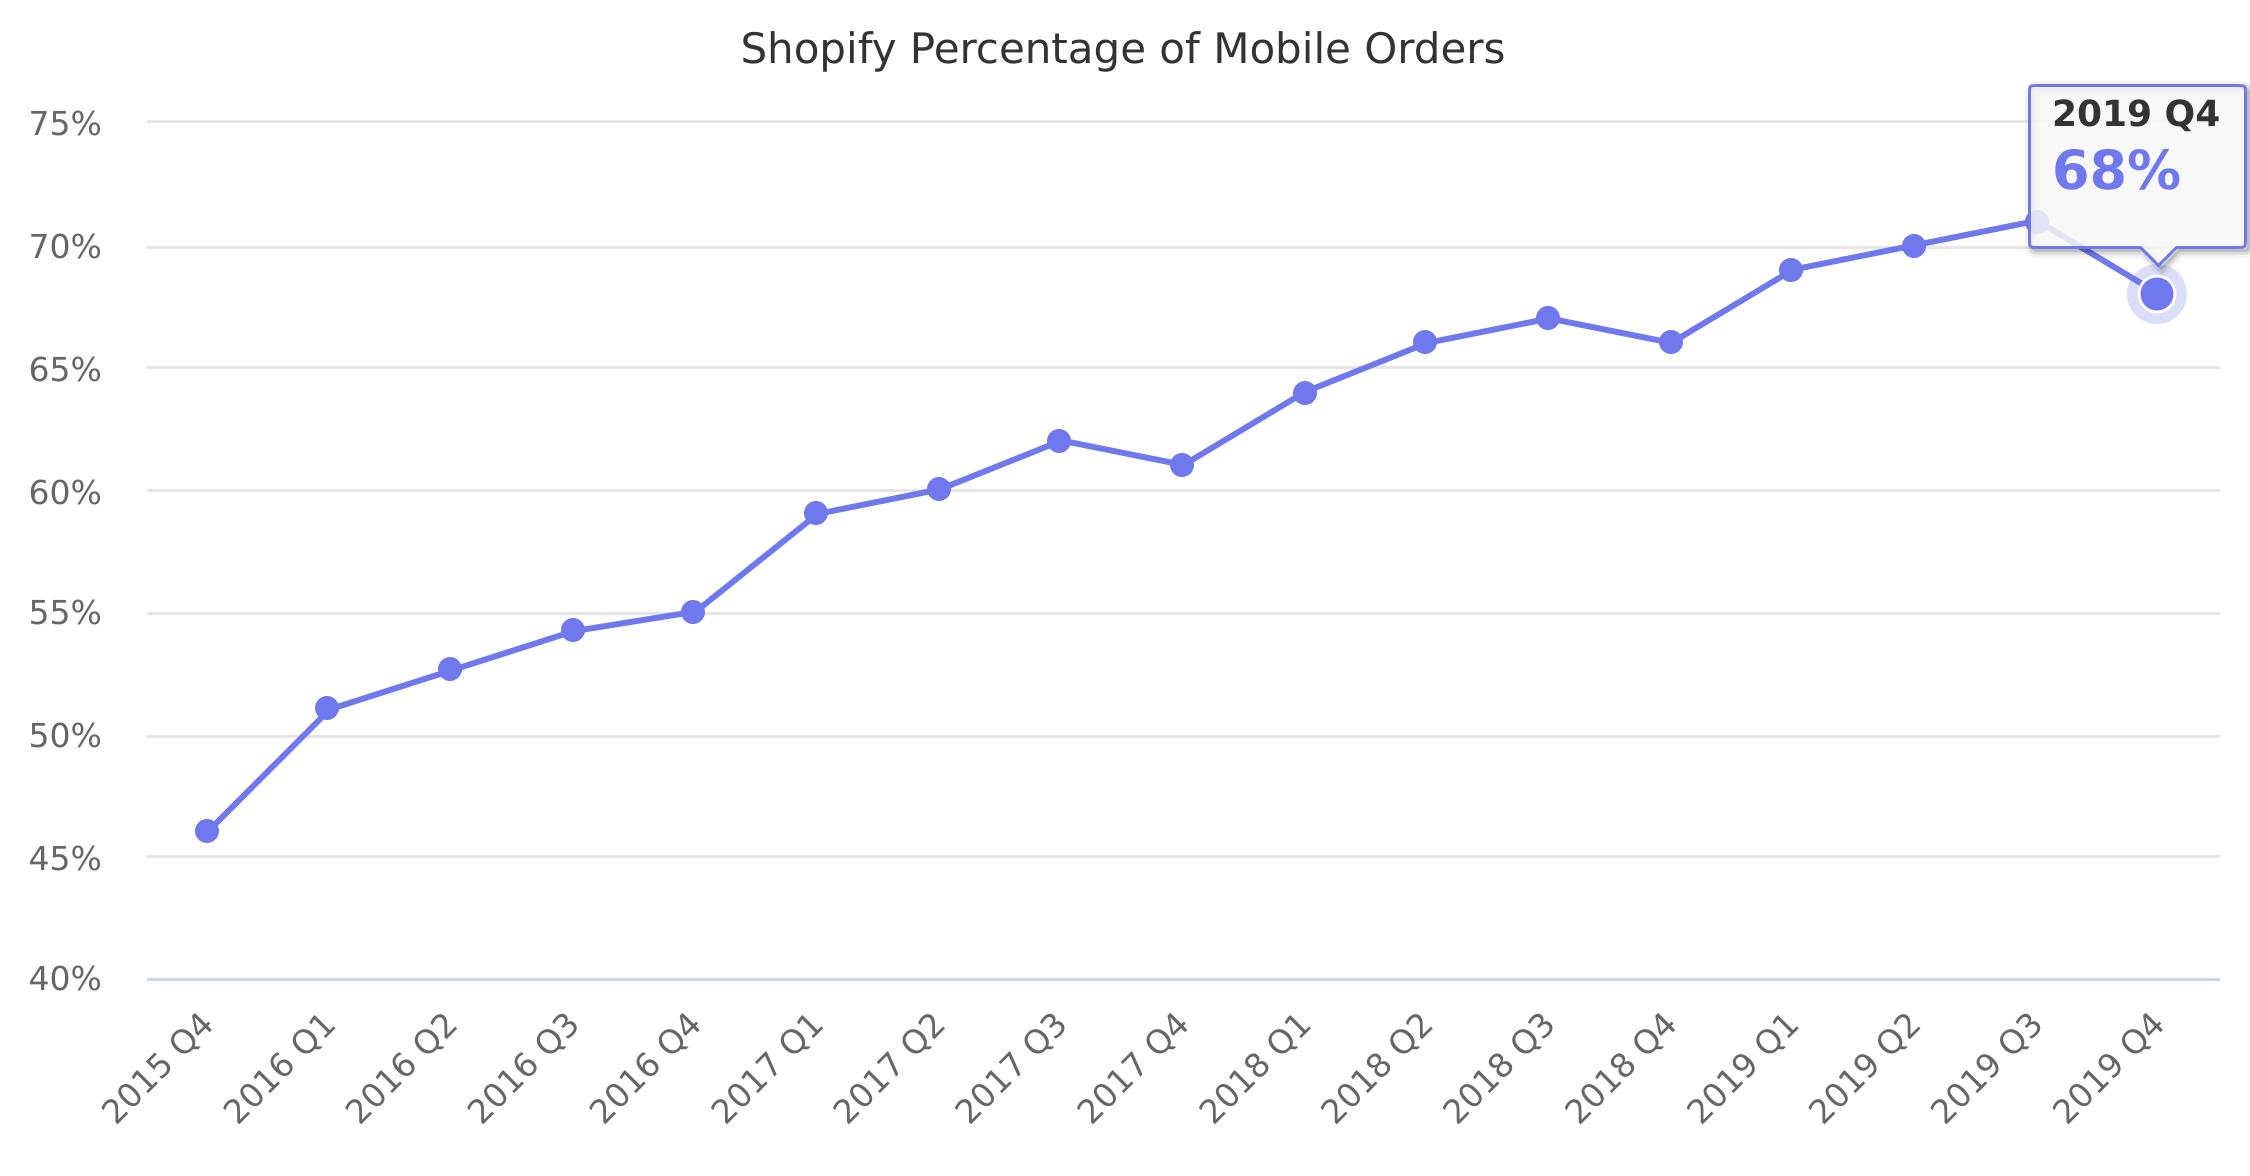 Shopify Percentage of Mobile Orders 2015-2018